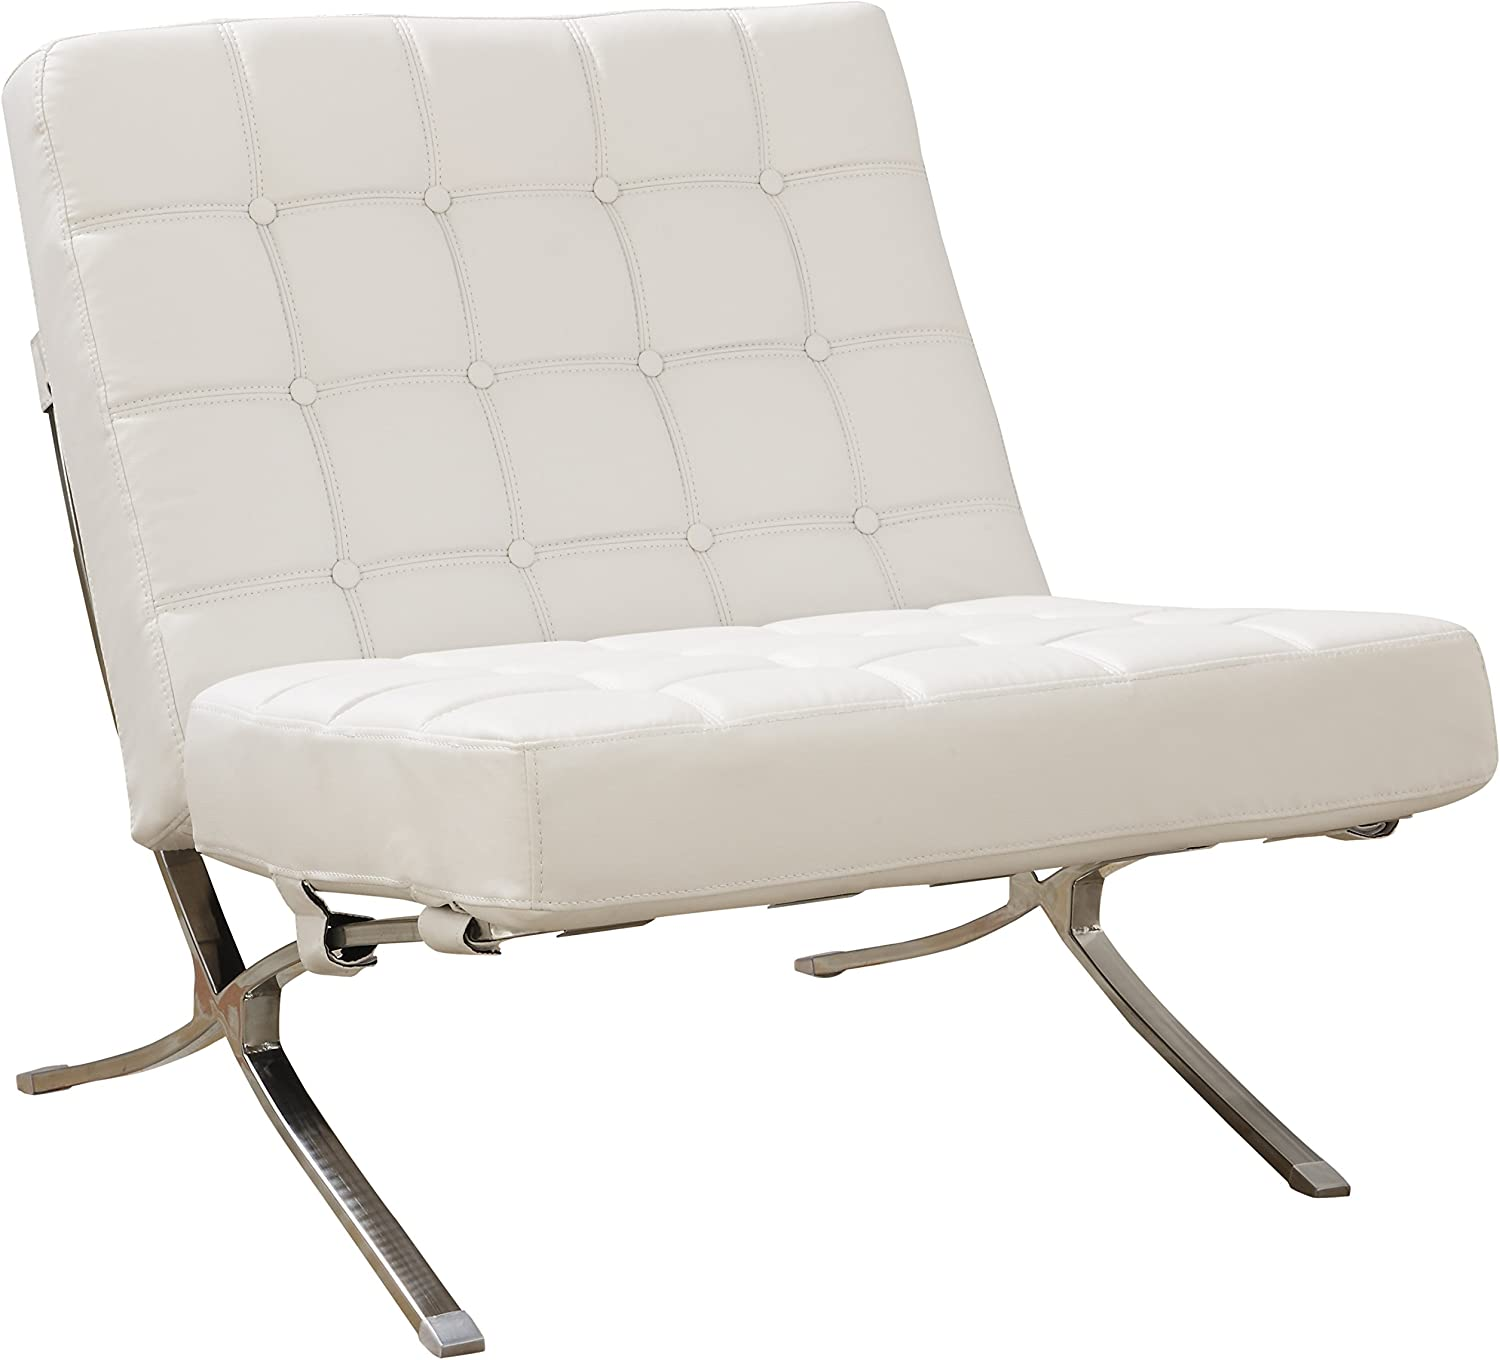 Global Furniture Usa Global Furniture Natalie Chair White Furniture Decor